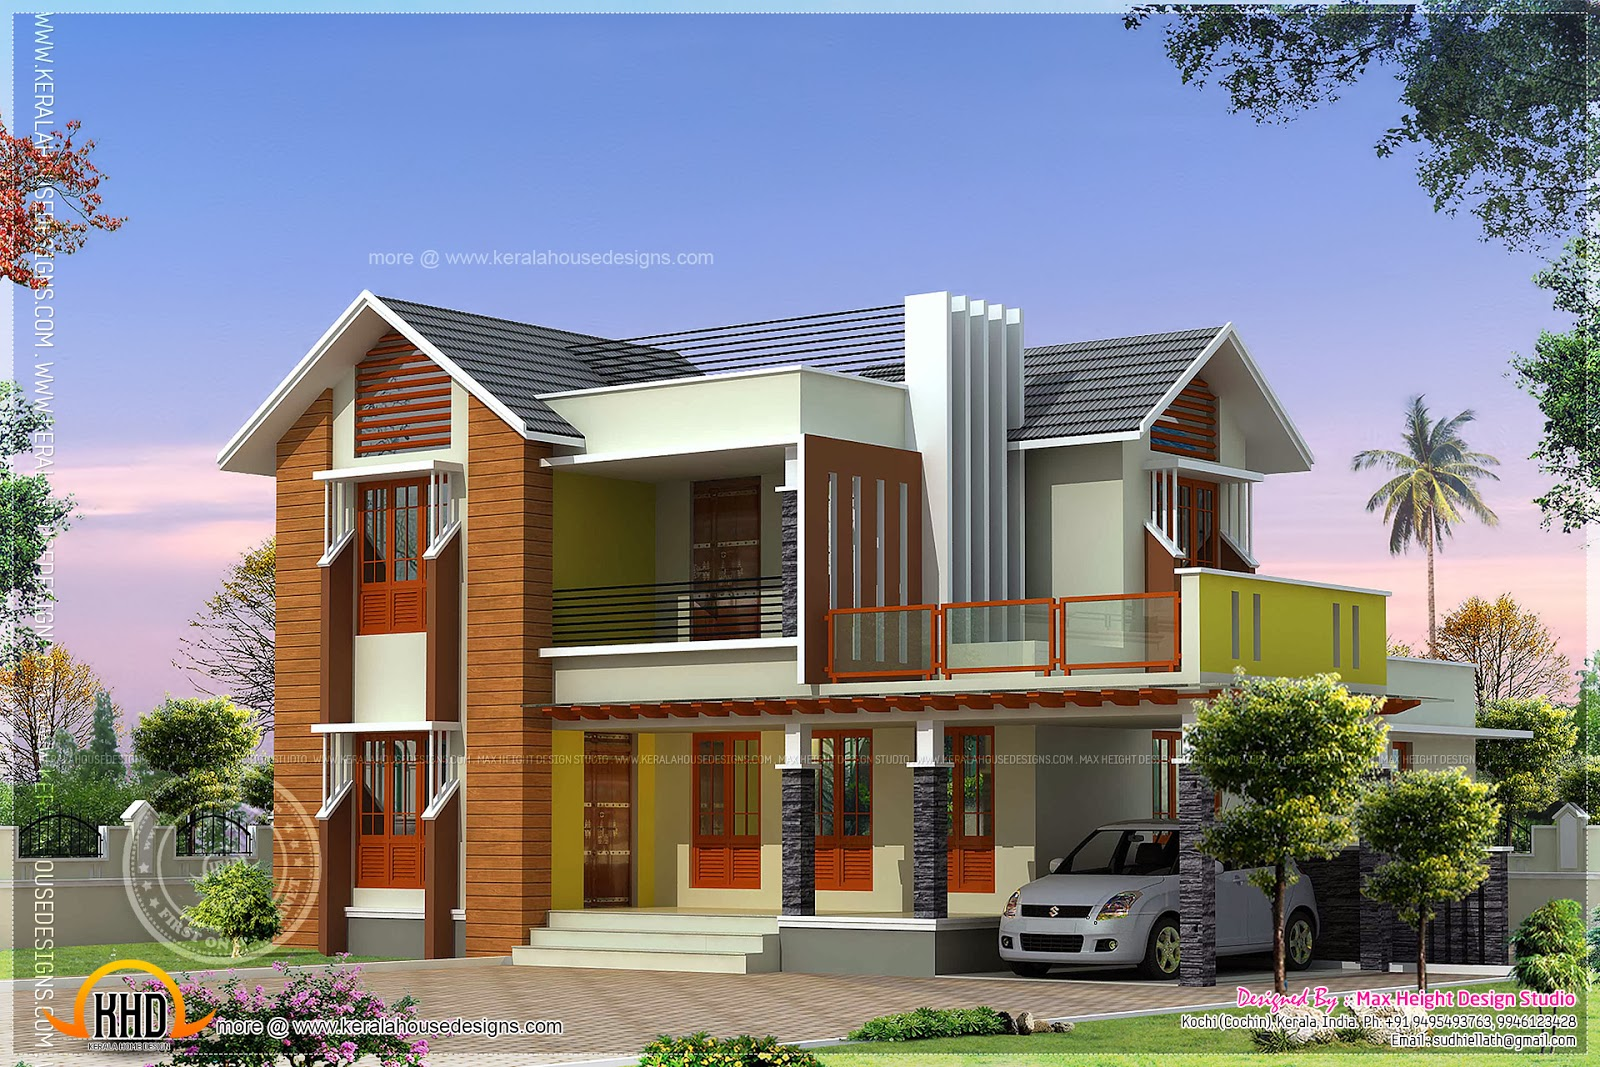 Indian house plans for 2300 square feet joy studio for Indian house picture gallery